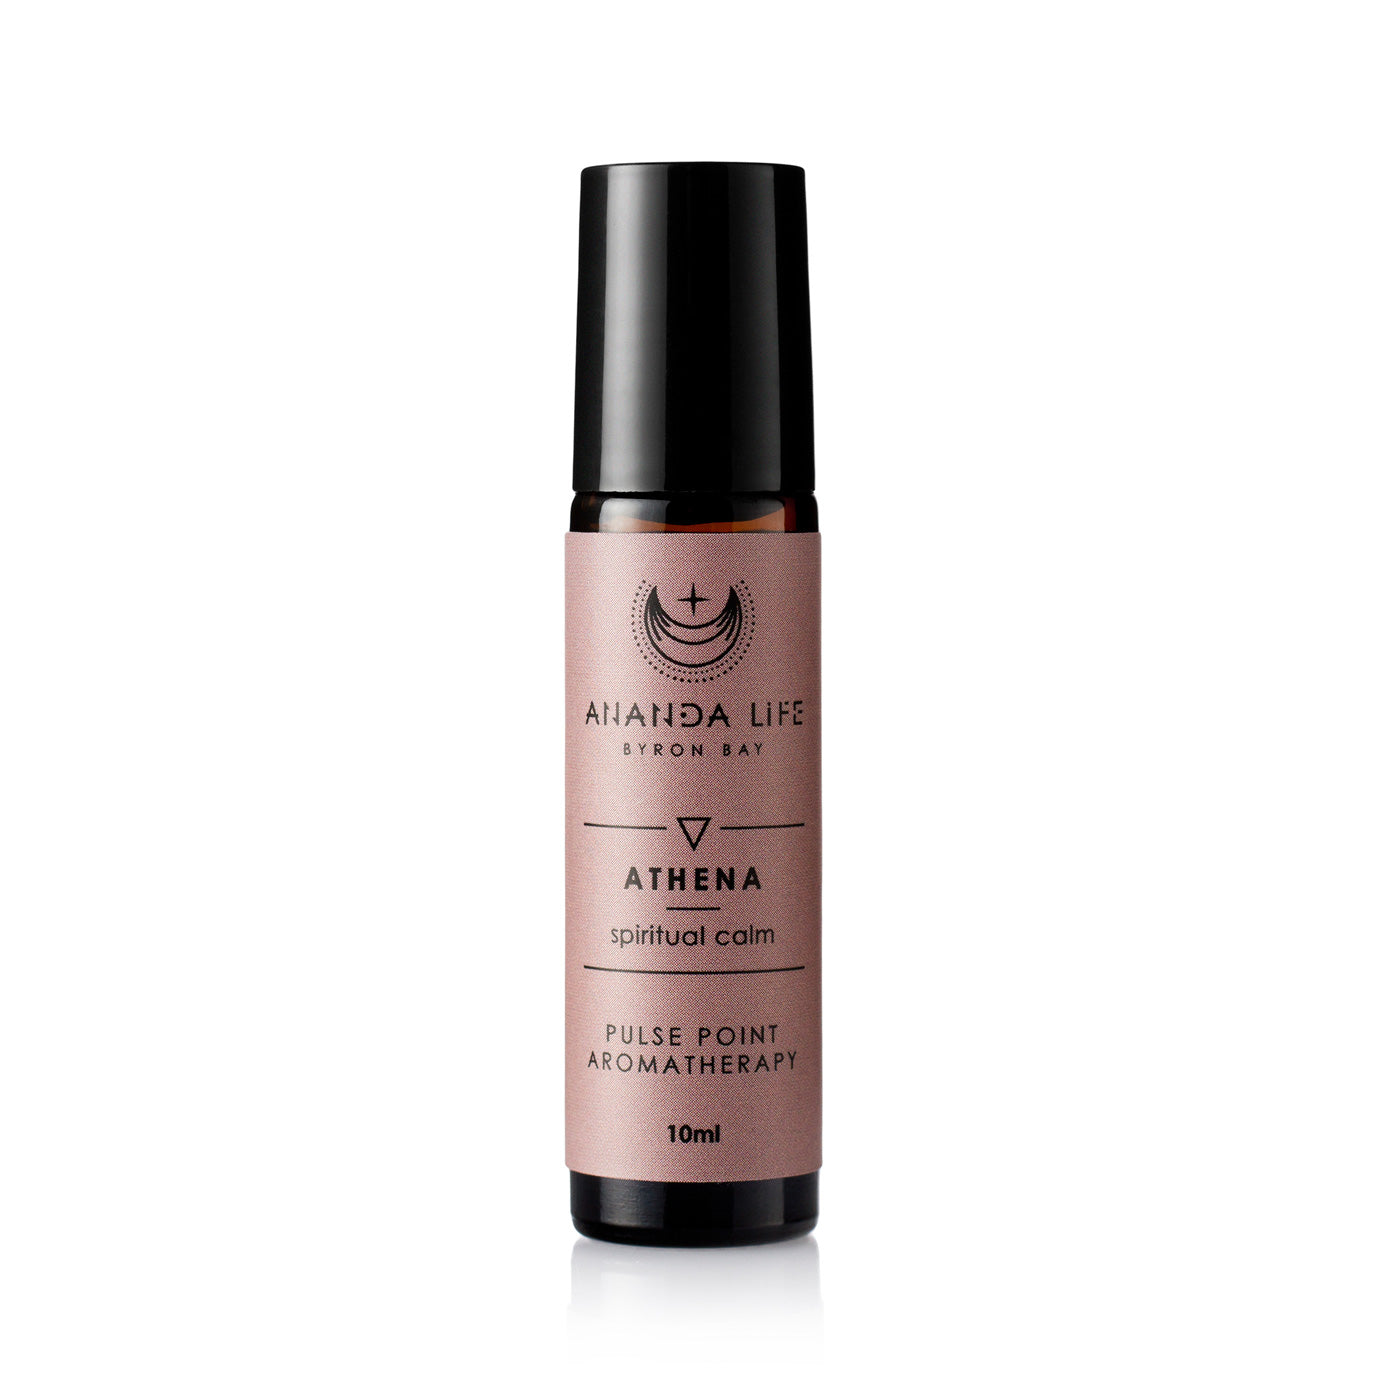 Pulse Point Aromatherapy Amber Rose renamed ATHENA - Spiritual Calm